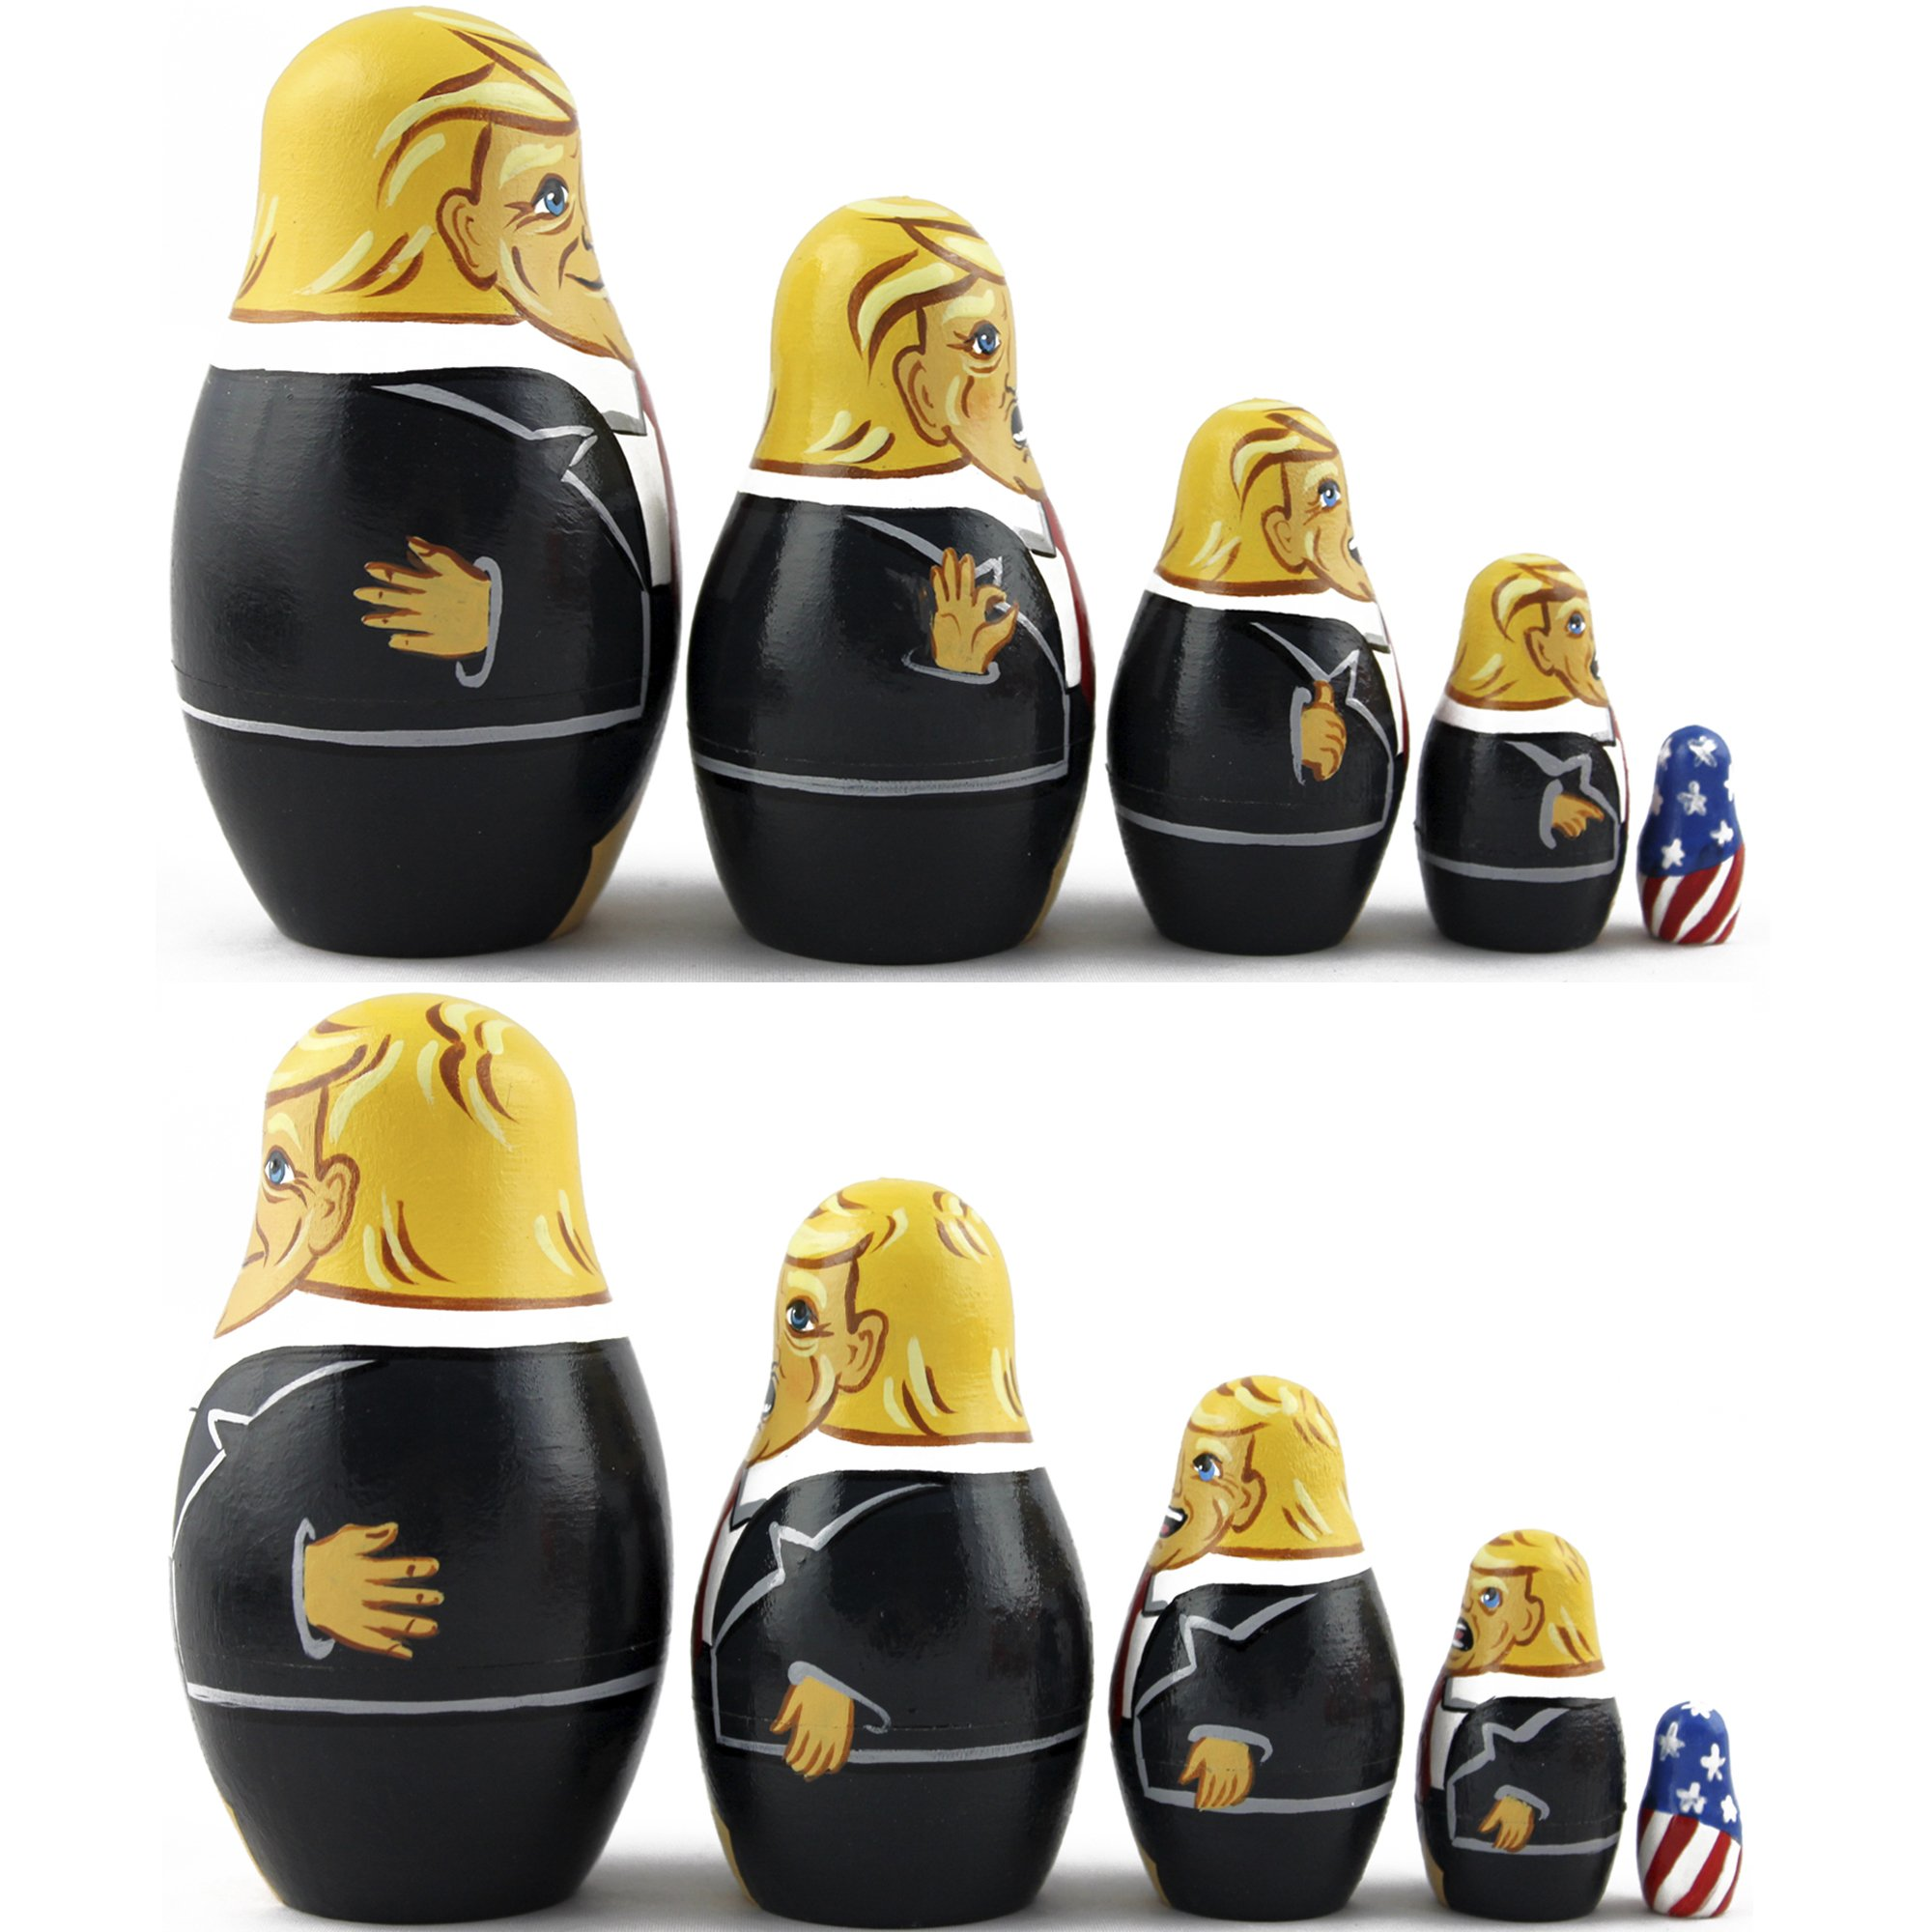 Donald Trump Gifts - Donald Trump Funny Toy Doll - Trump Nesting Dolls Gag Gifts - Set 5 pc 3.7 inches by MATRYOSHKA&HANDICRAFT (Image #3)